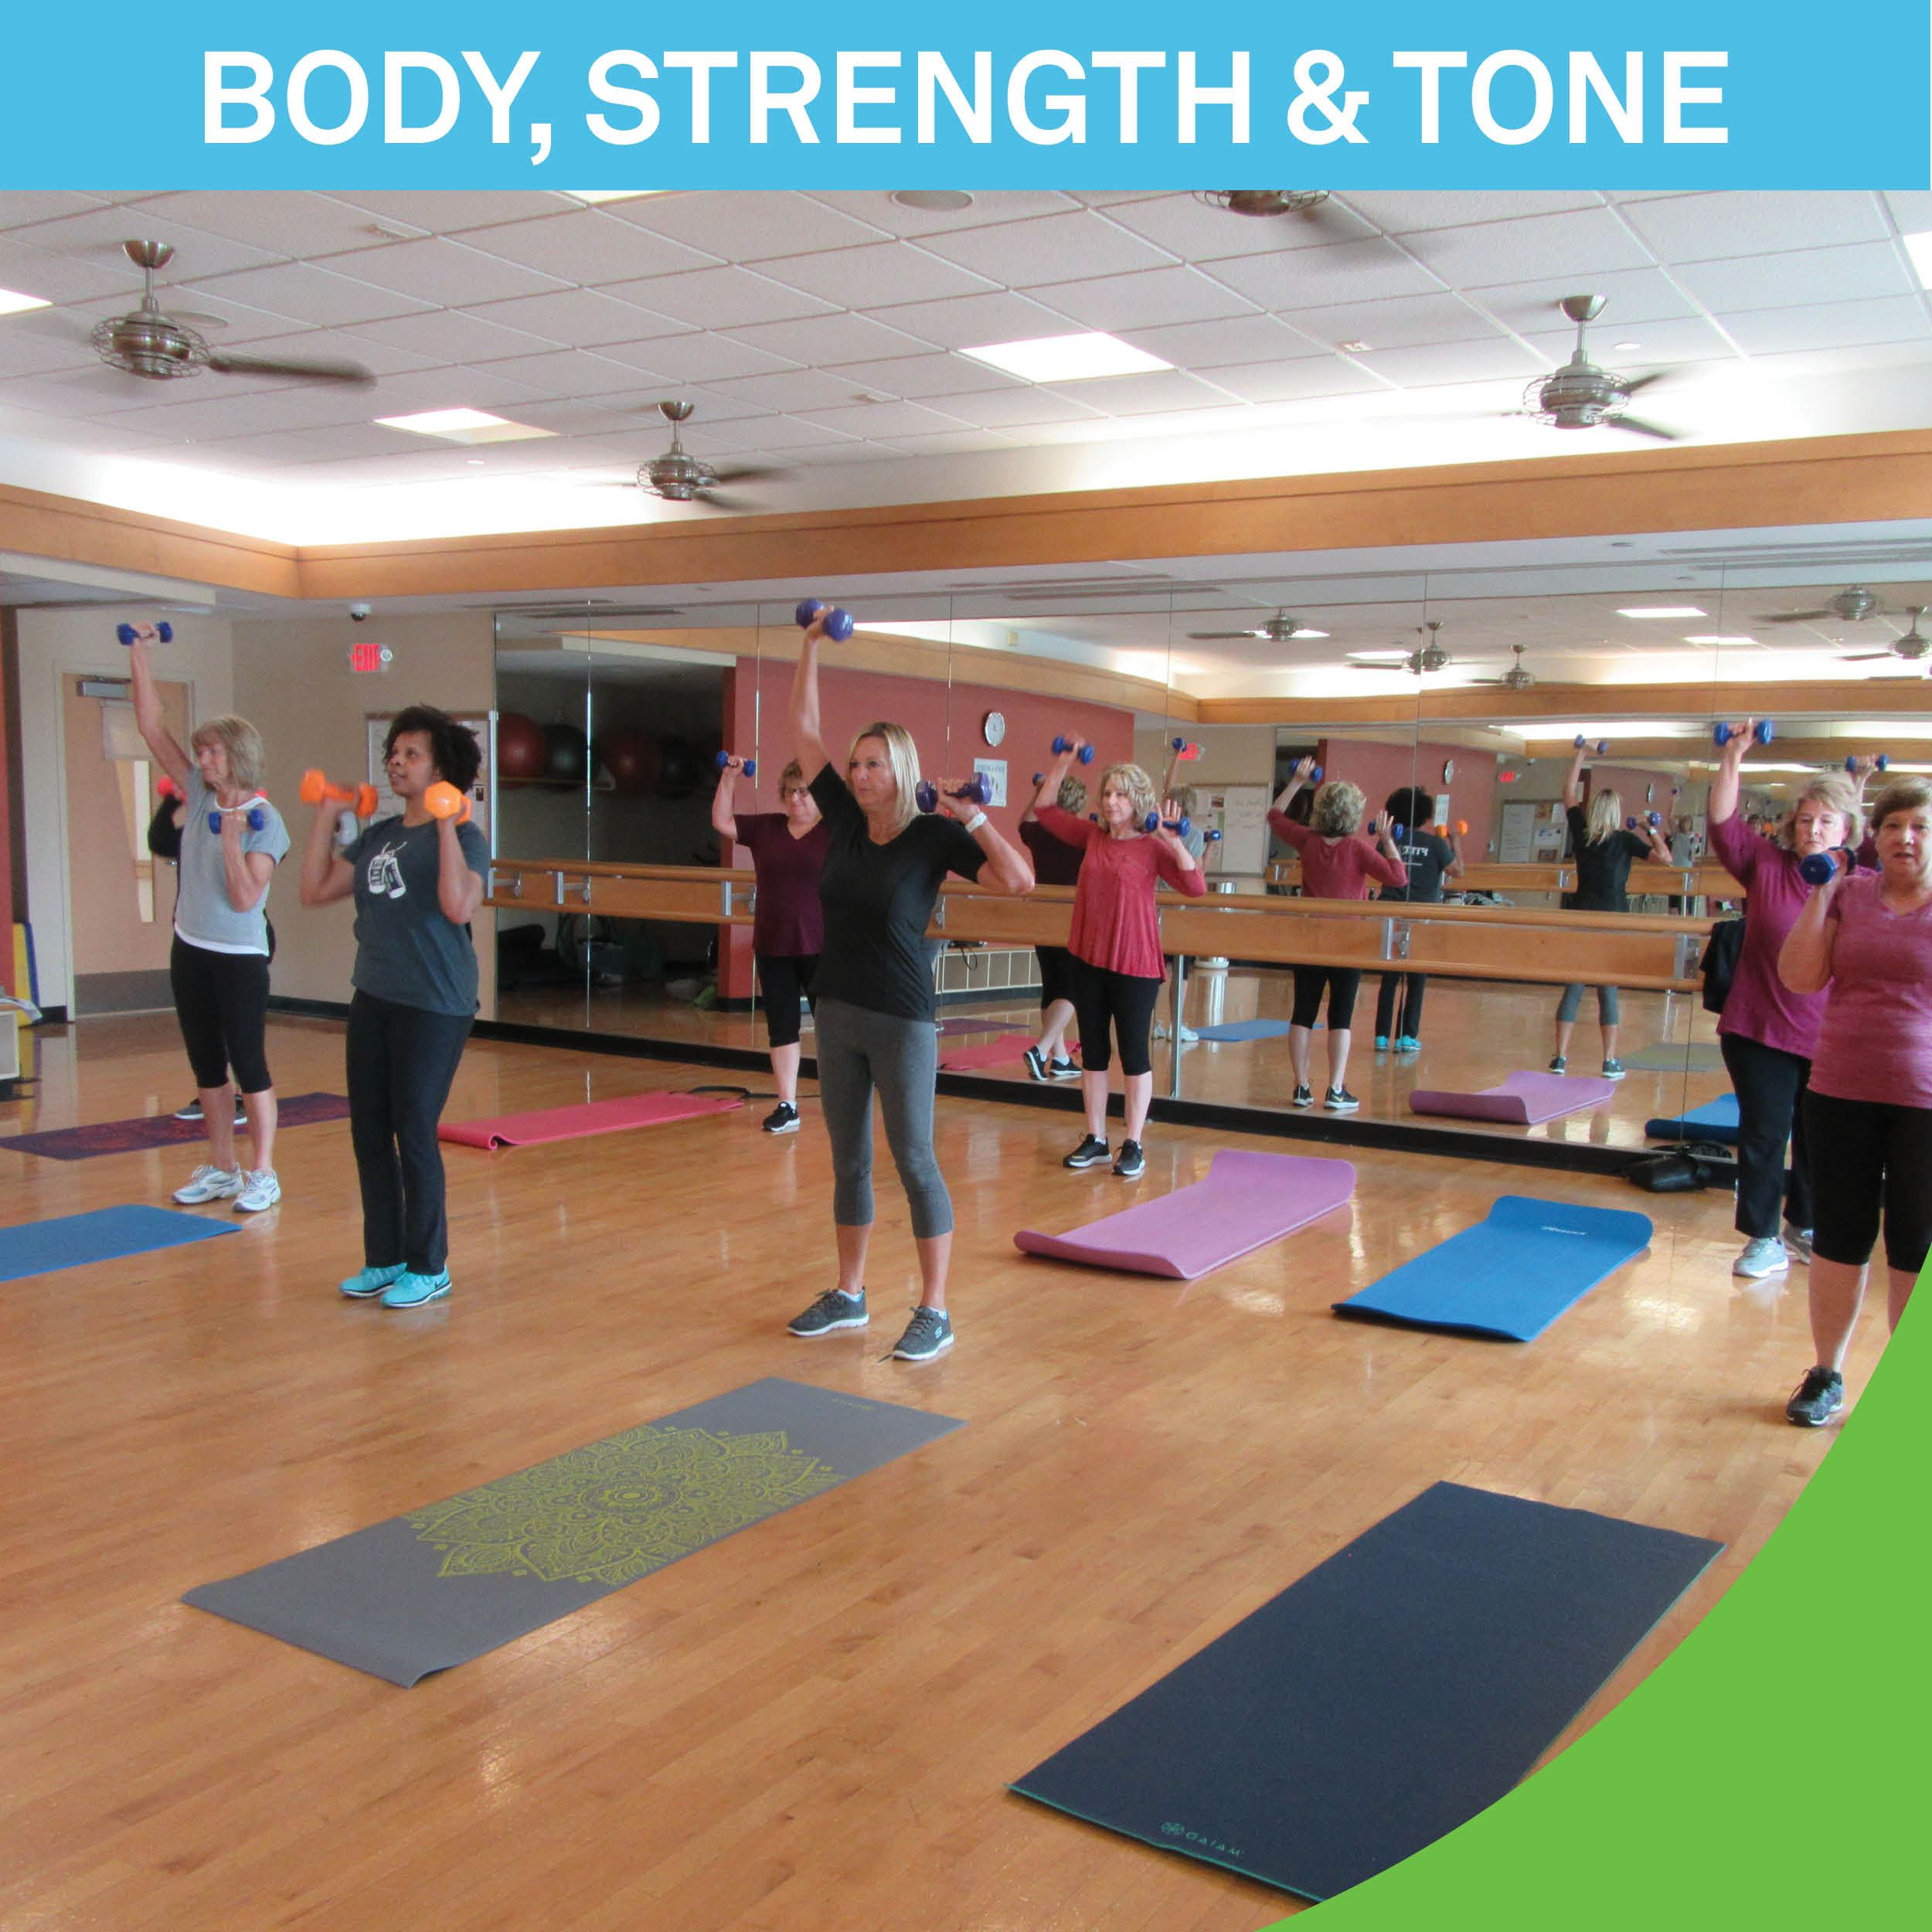 BODY STRENGTH TONE